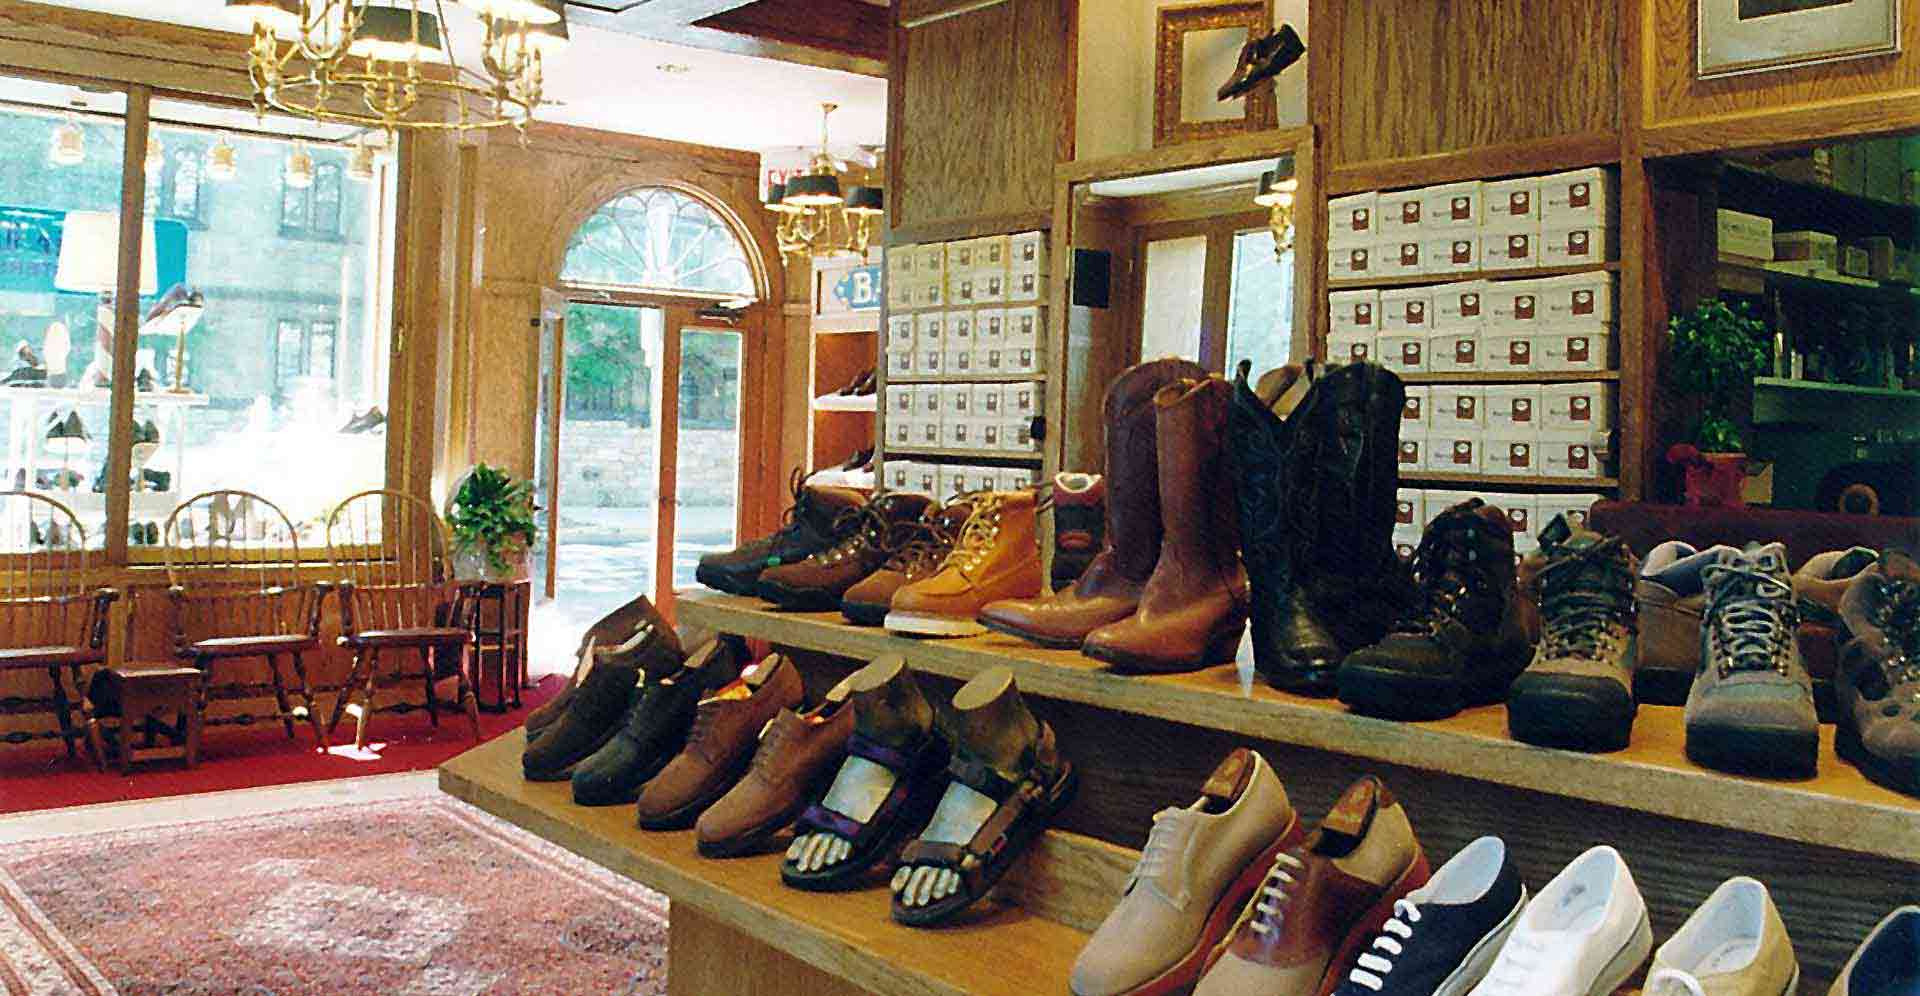 LANGROCK-BUILDING-BARRIES-SHOES.jpg